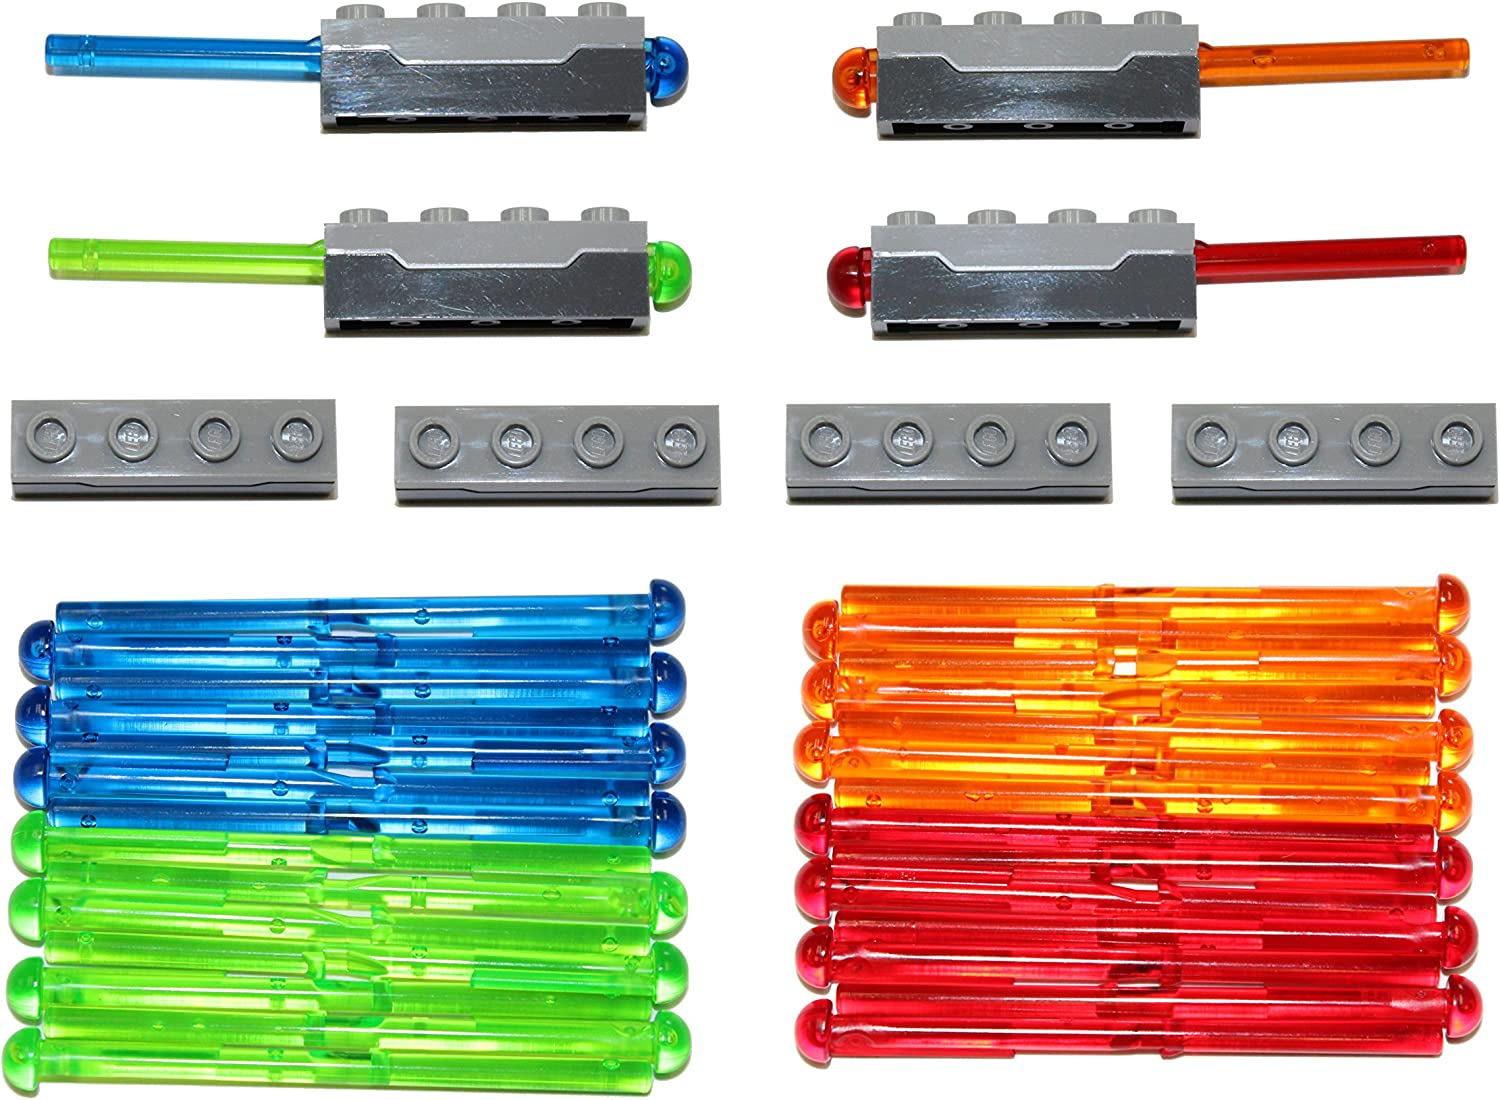 LEGO Parts and Pieces: Gray 1x4 Spring-Loaded Dart Shooter with Ammo x8